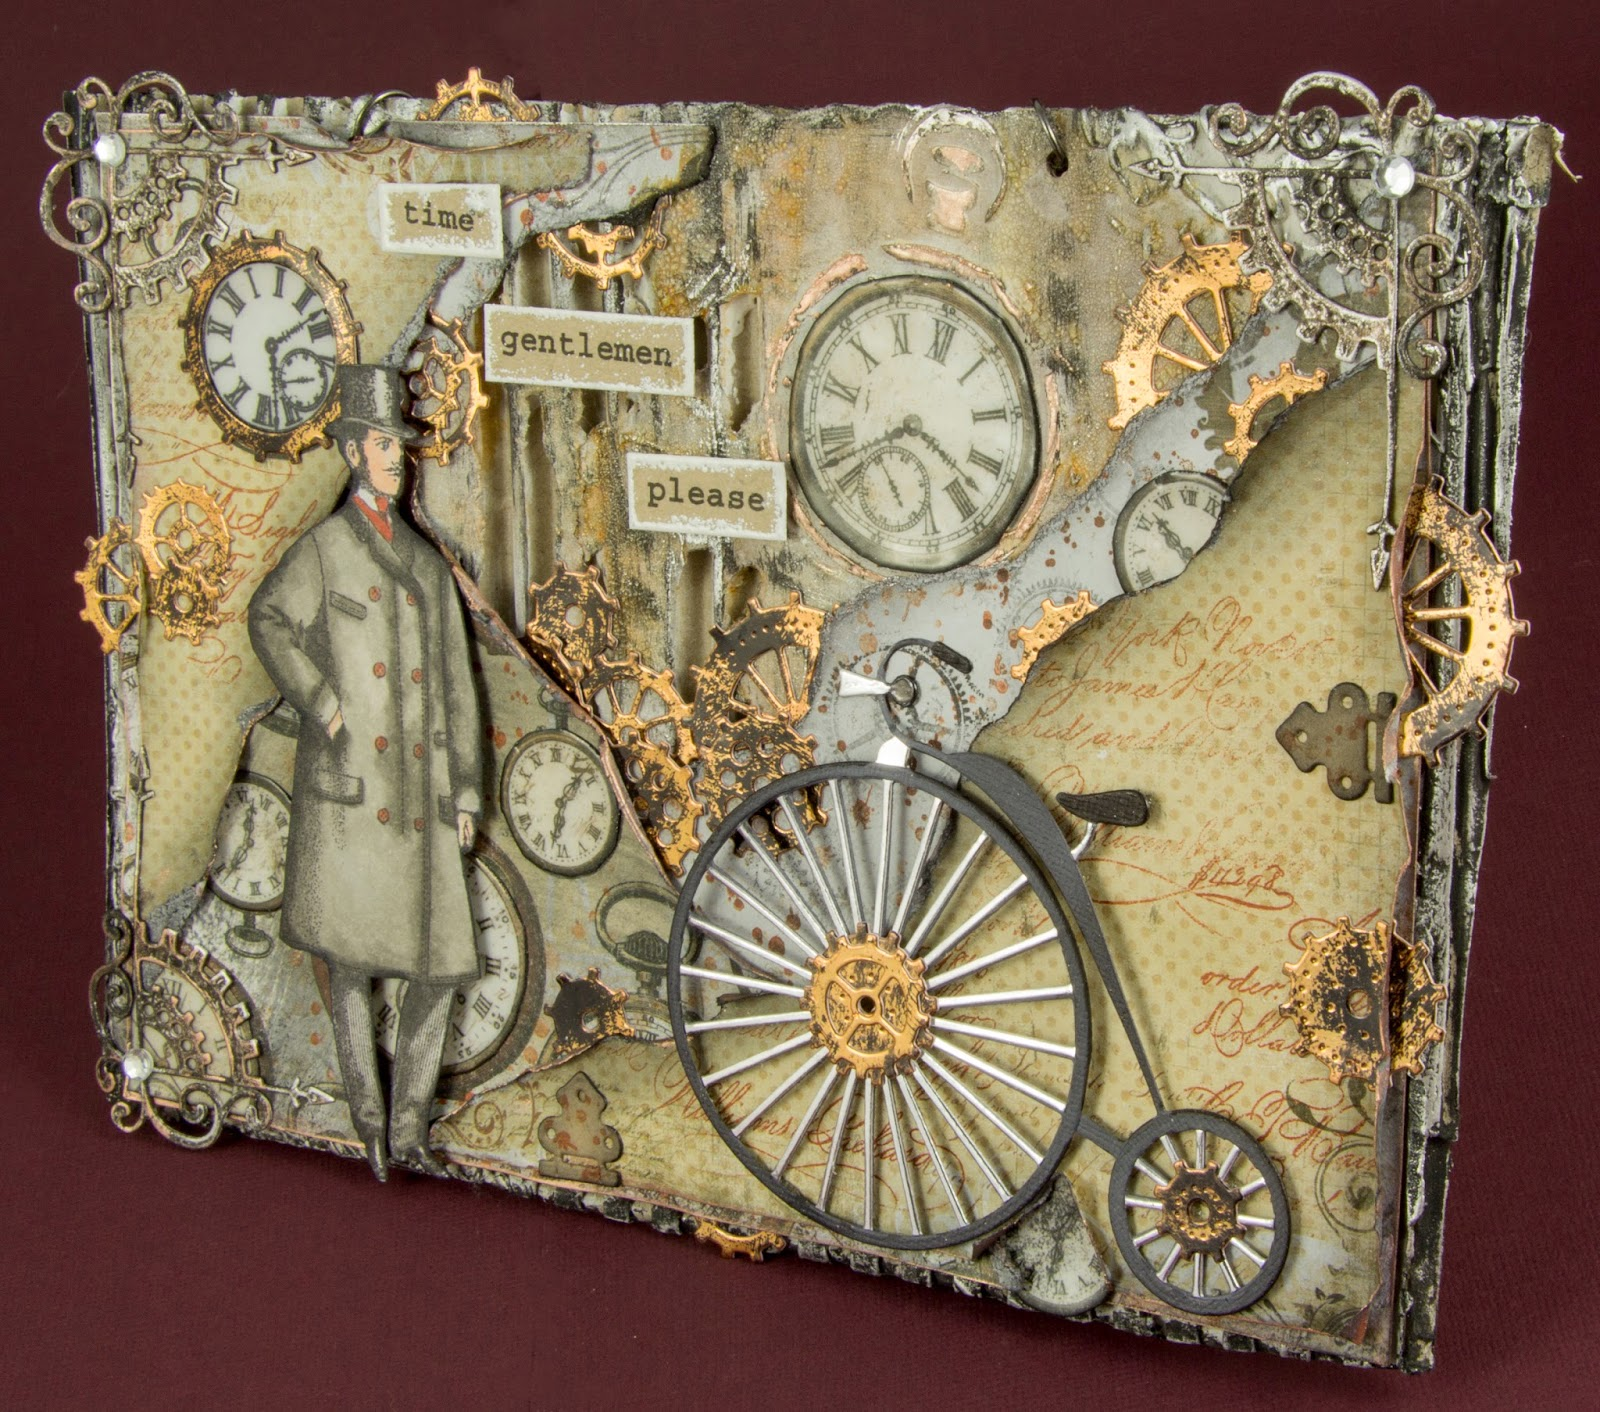 juliz design post industrial revolution thanks for having me over at country view challenges and taking the time to my blog i hope you all have enjoyed my project as much as i did in making